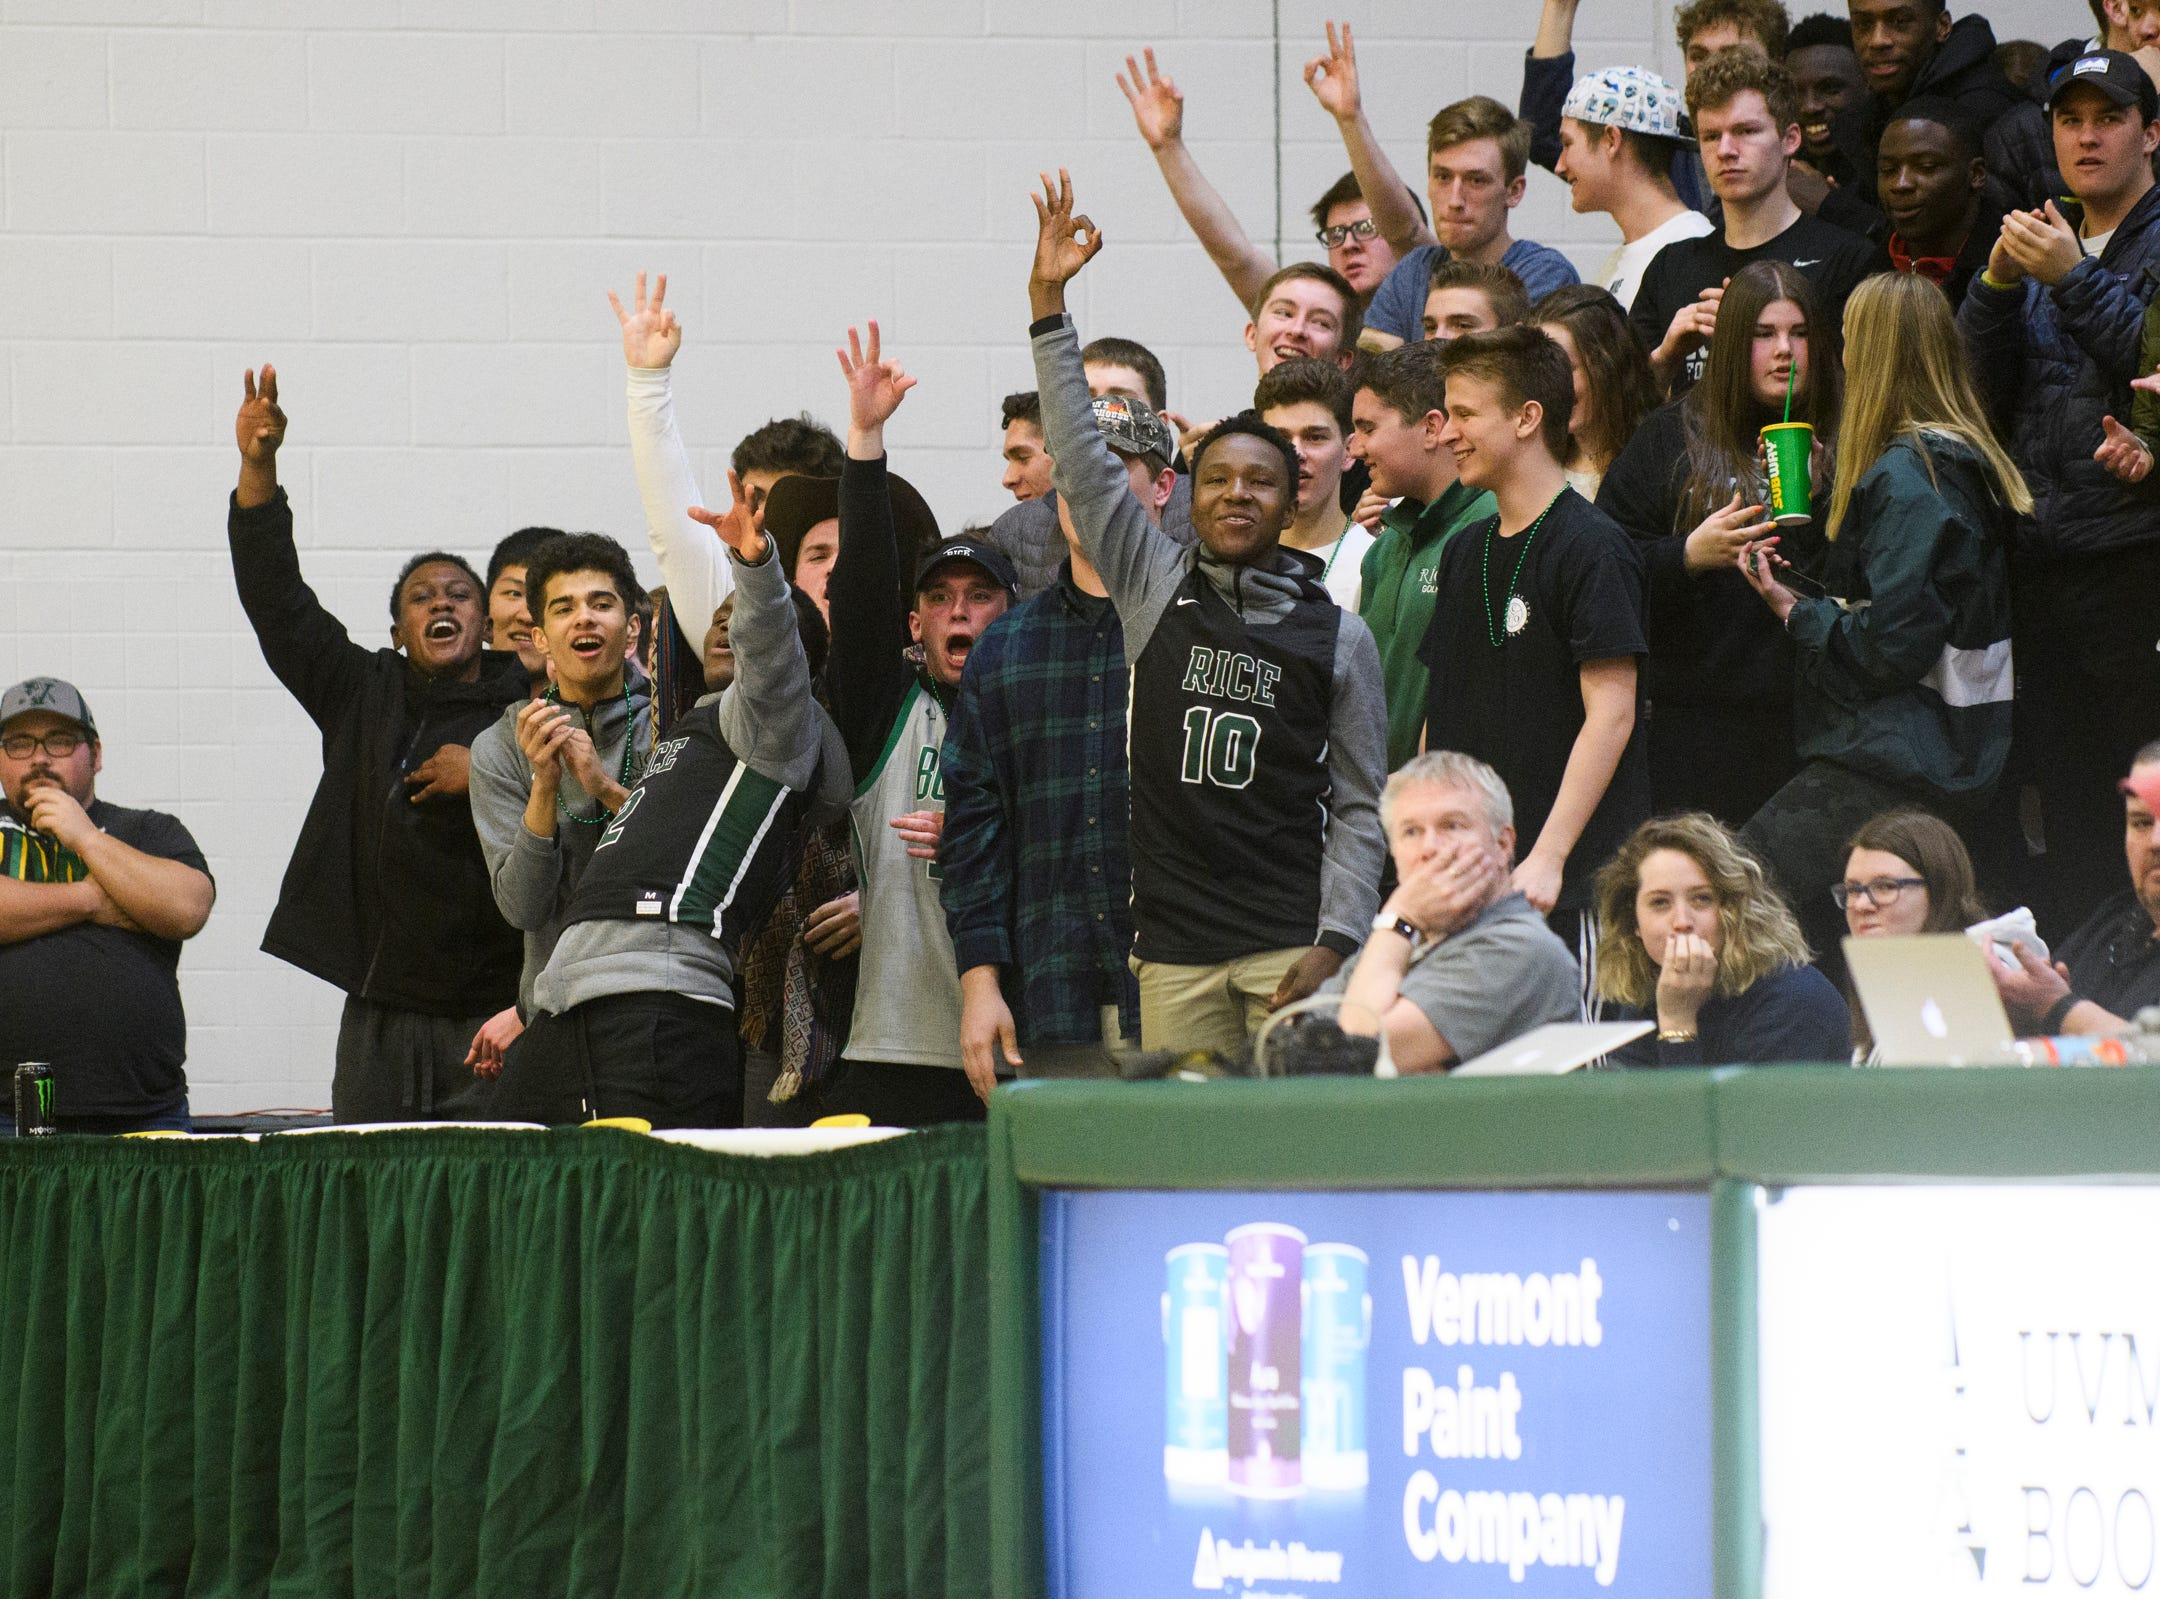 The Rice fans cheer for the team after a three pointer during the girls semifinal basketball game between the Rice Green Knights and the Champlain Valley Union Redhawks at Patrick Gym on Wednesday nigh March 6, 2019 in Burlington, Vermont.